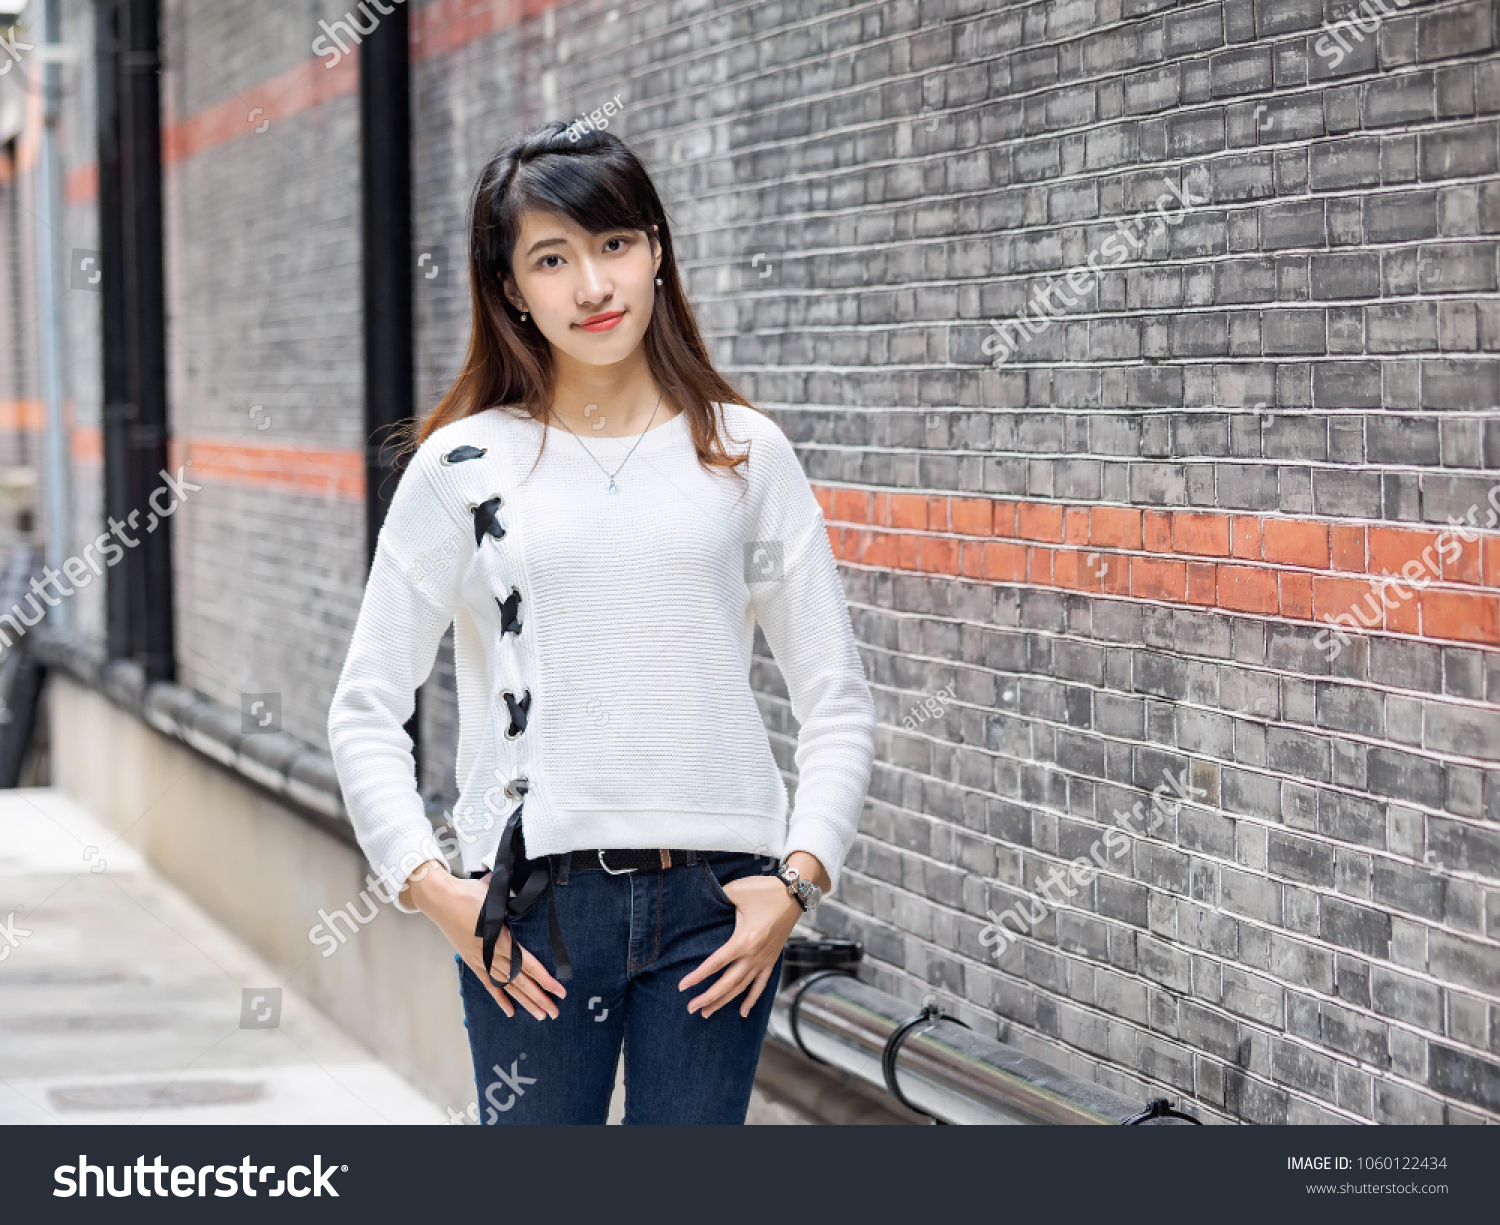 20c21fbd87e Portrait of beautiful young Chinese woman wearing white sweater and blue  jeans in Shanghai Xintiandi